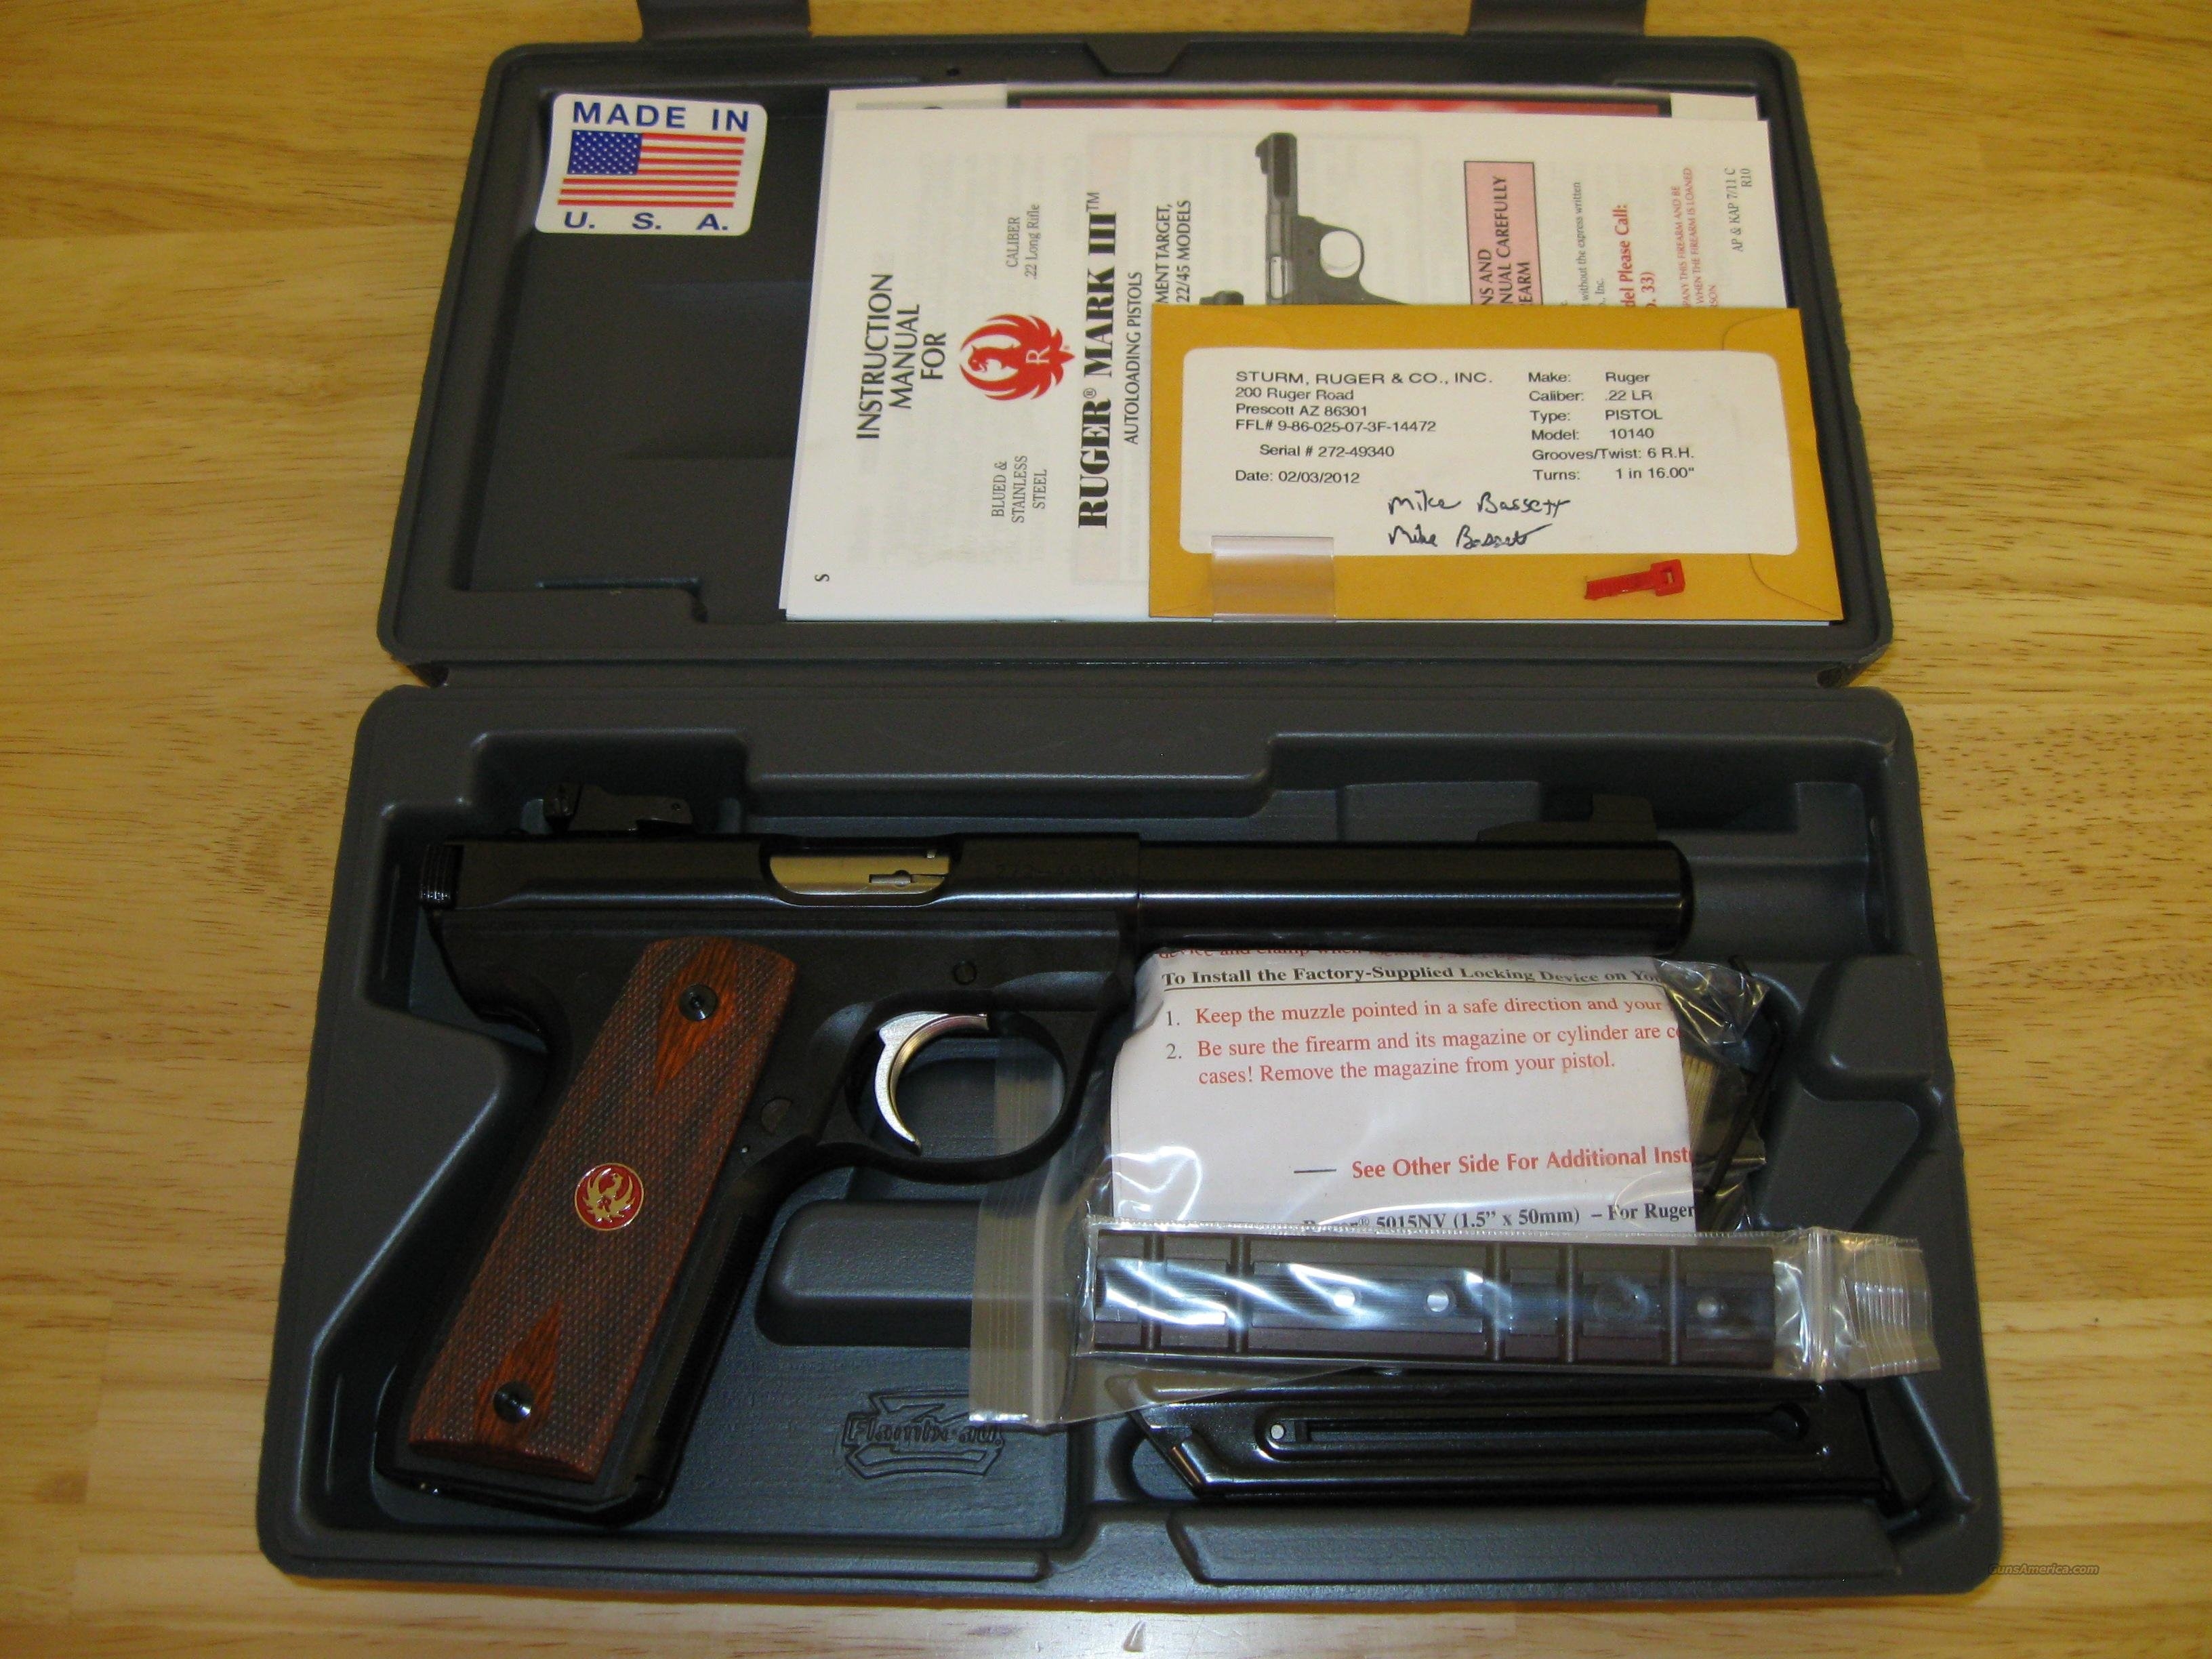 Ruger Model P512MKIIIRP 22/45 Pistol 10140, 22 Long Rifle, 5.5 in Bull, Cocobolo Wood Grip, Blue Finish, 10 Rd  Guns > Pistols > Ruger Semi-Auto Pistols > Mark I & II Family